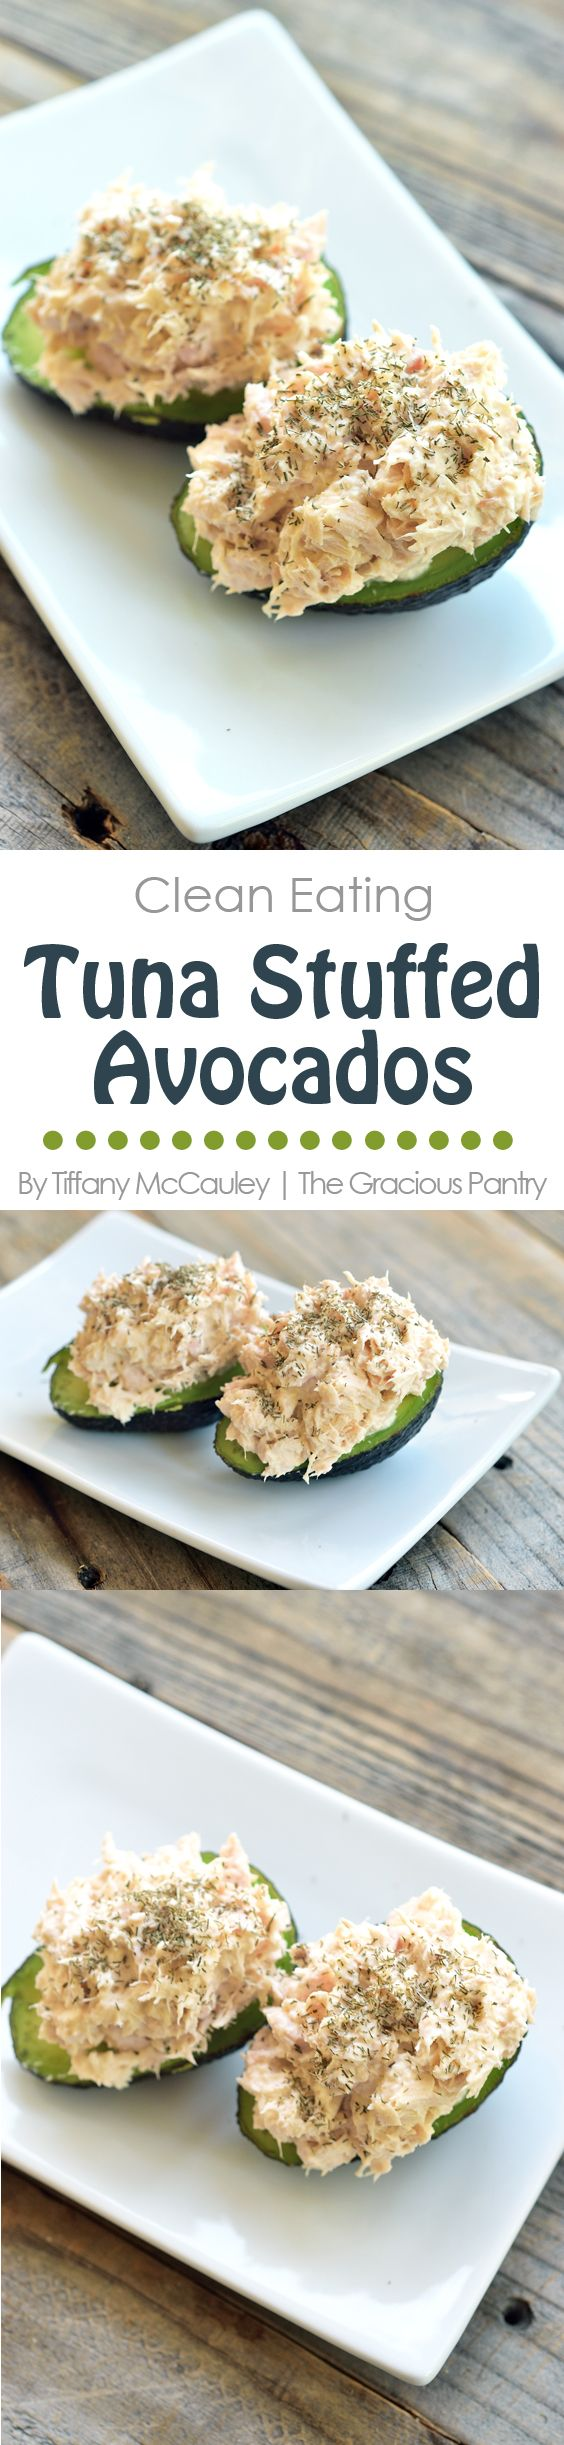 This easy to make recipe if tasty, filling and can be made in under 10 minutes. Perfect for those days you're short on time but still want to eat clean!